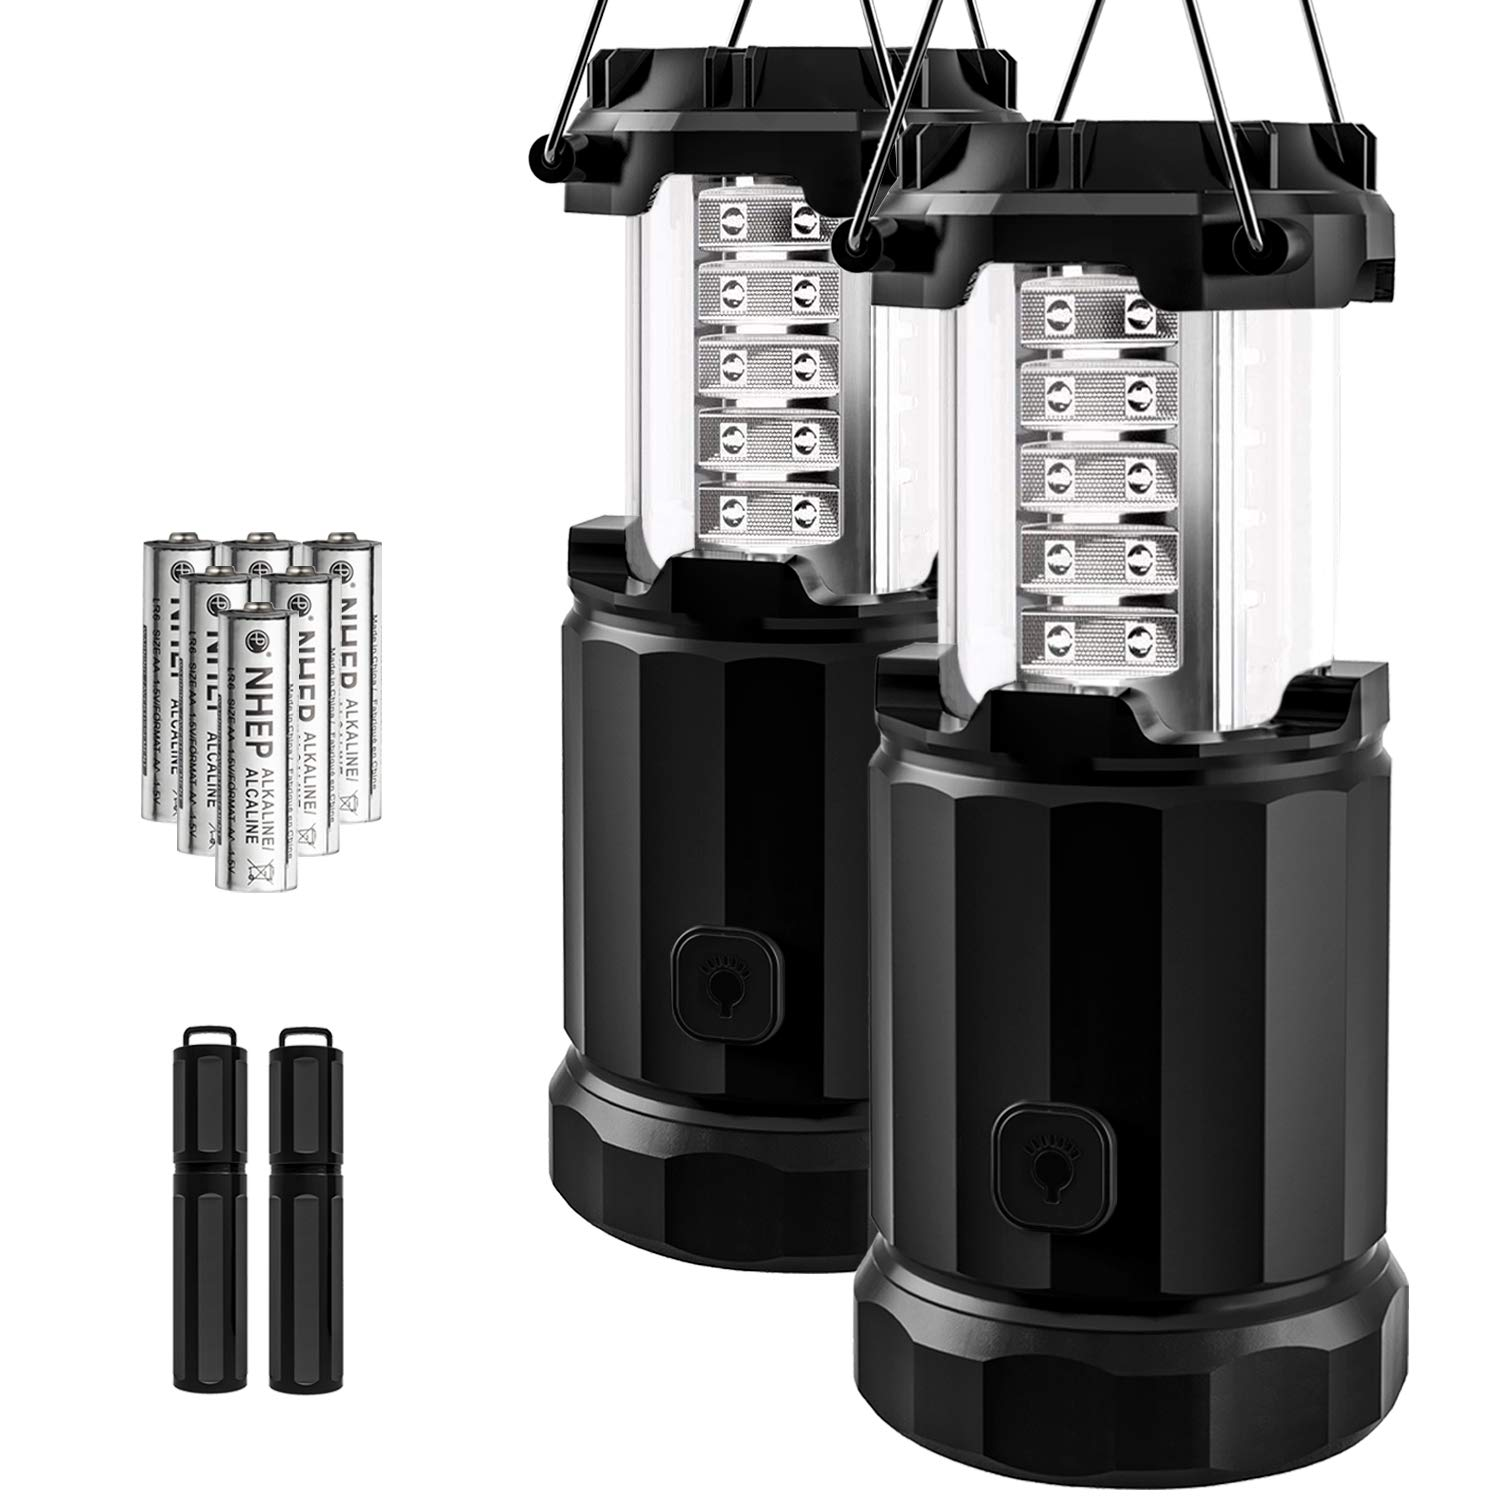 Etekcity 2 Pack & 4 Pack Portable LED Camping Lantern Flashlights with AA Batteries, Upgraded Magnetic Base and Dimmer Button- Collapsible Survival Lights for Emergency, Hurricane, Outage by Etekcity